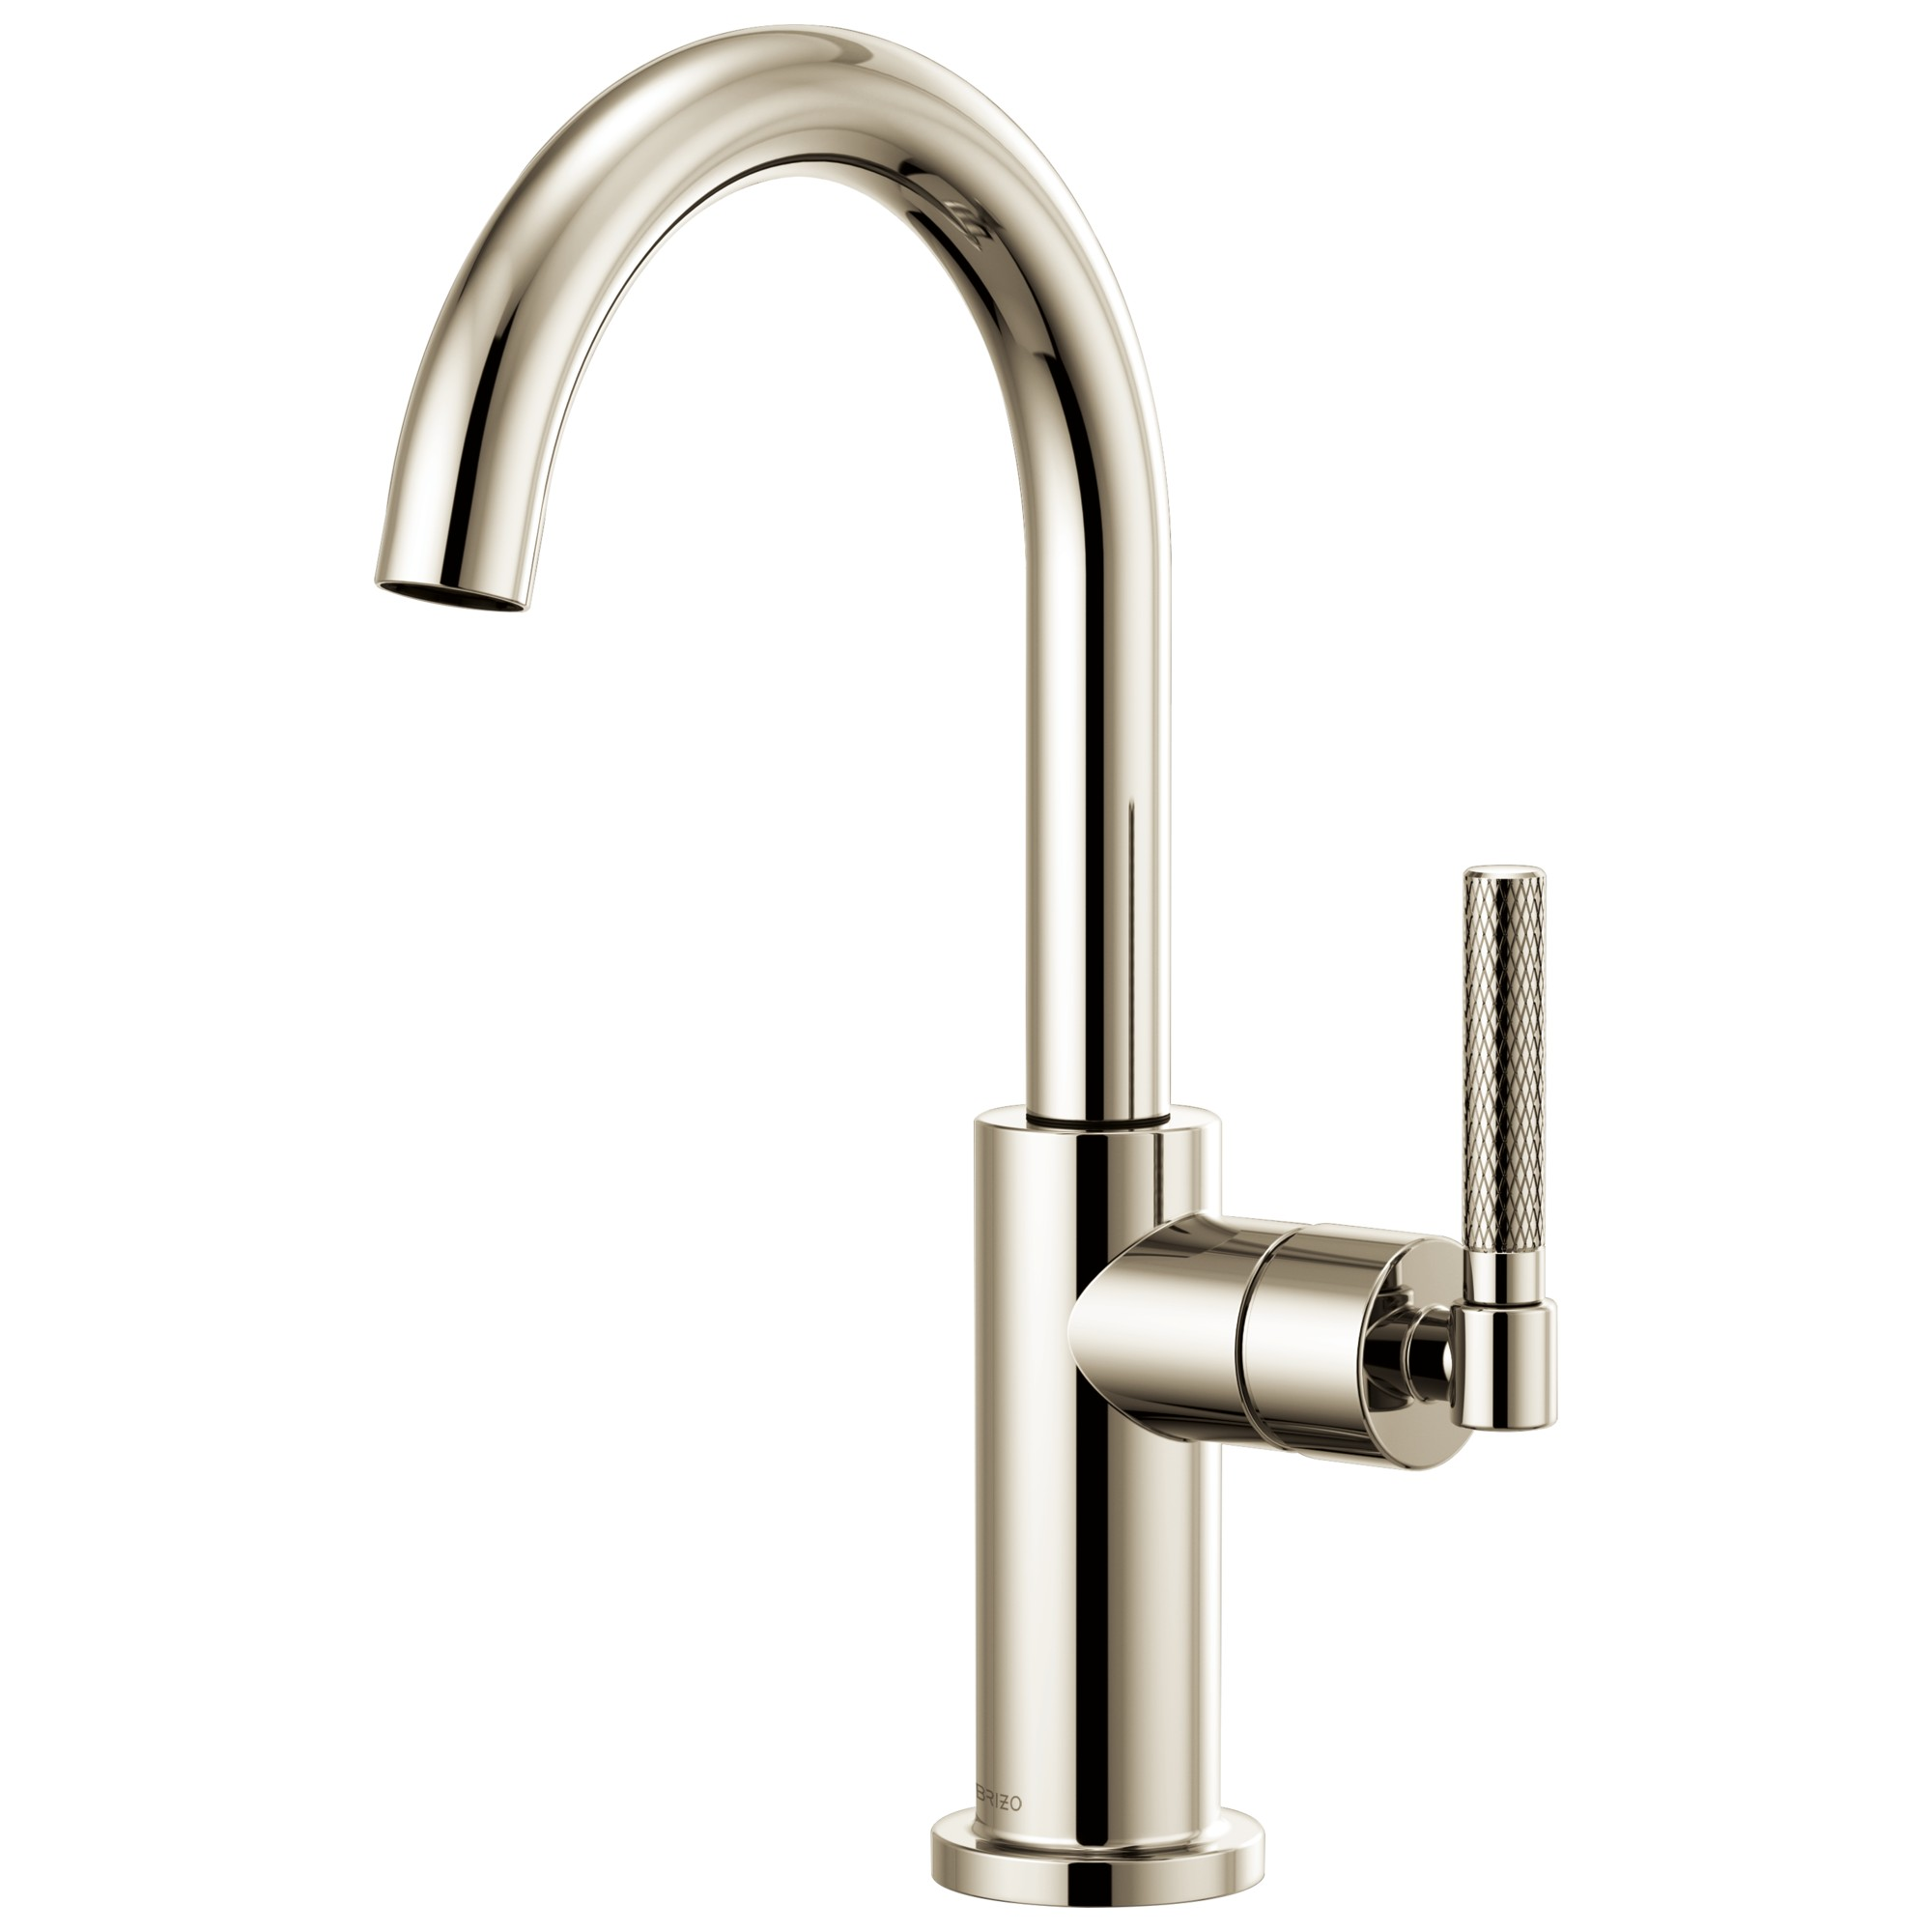 Brizo 61043LF-PN Litze Bar Faucet with Arc Spout and Knurled Handle - Polished Nickel